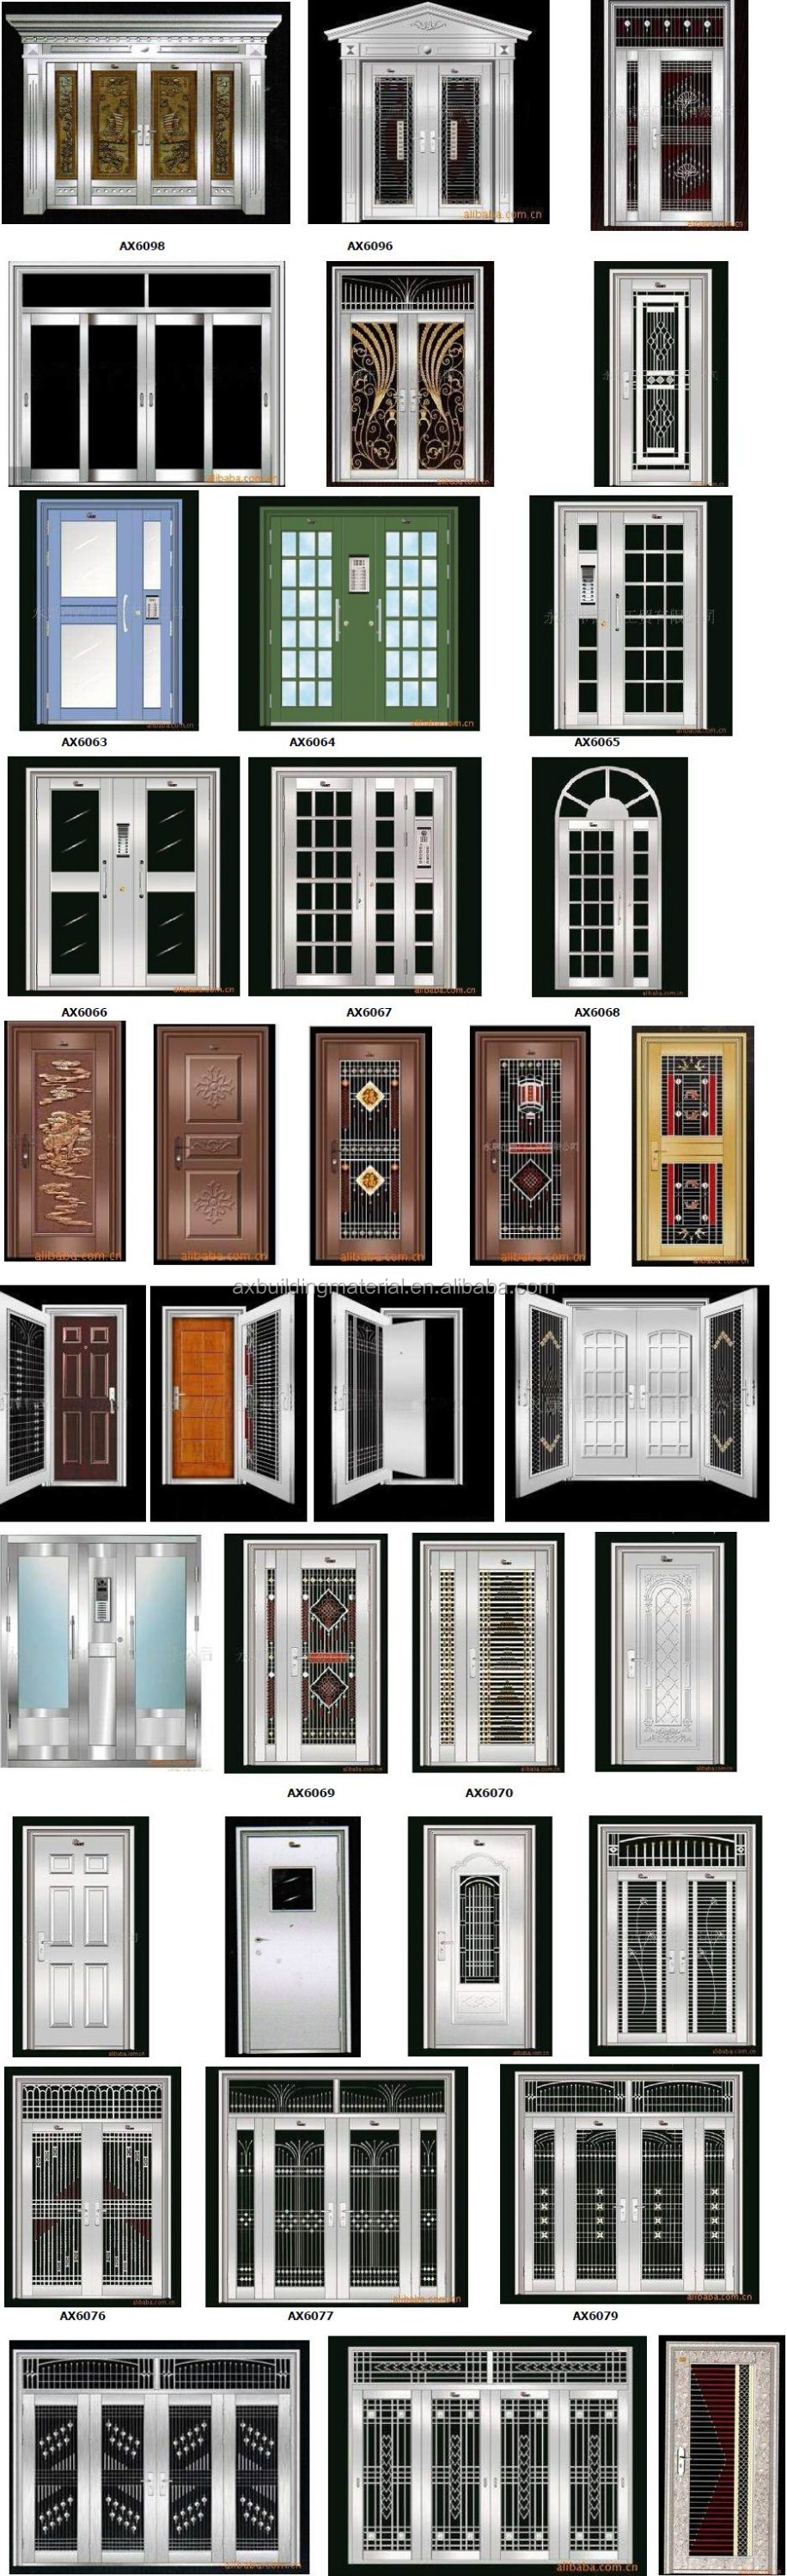 Best Quality International Standard Stainless Steel Door